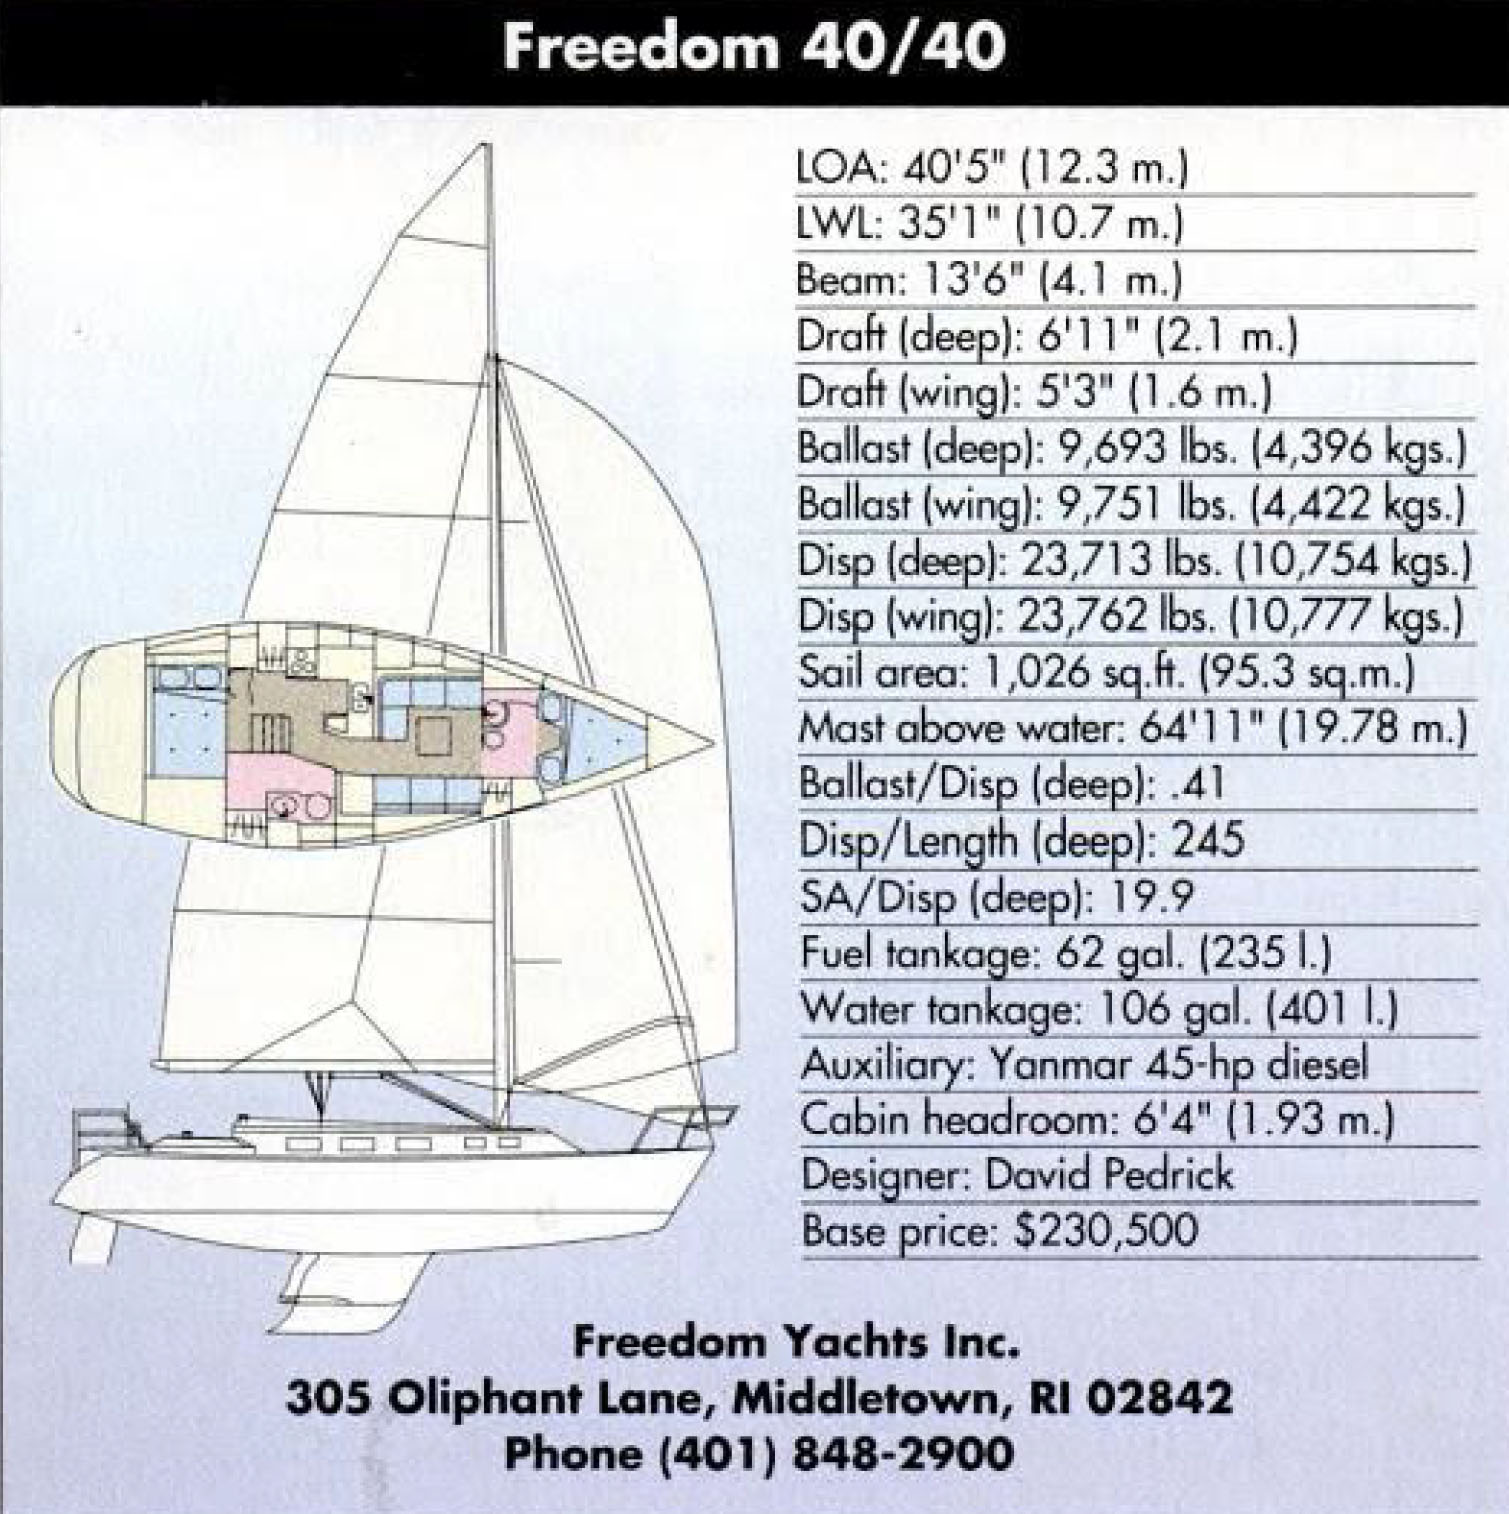 Freedom 40-40 Specifications